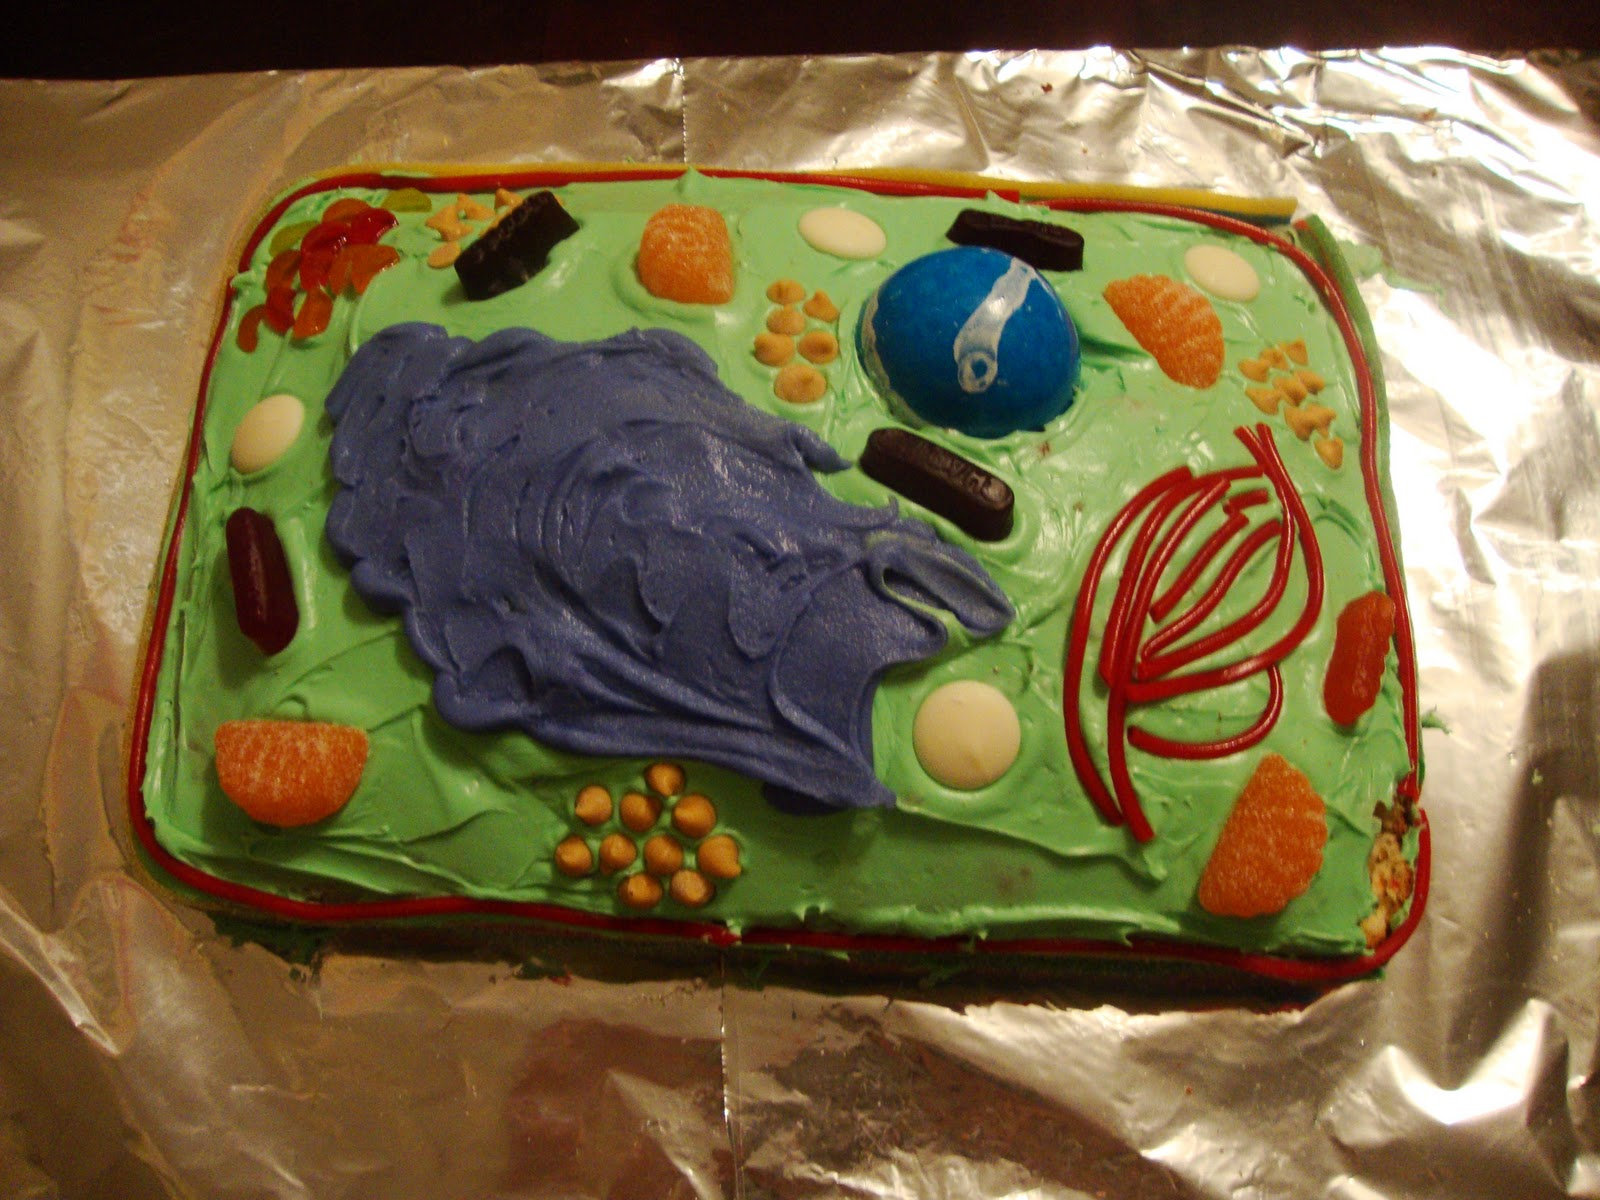 Basic Plant Cell Diagram Cake Color Sheet Wire Simple Labeled For Kids